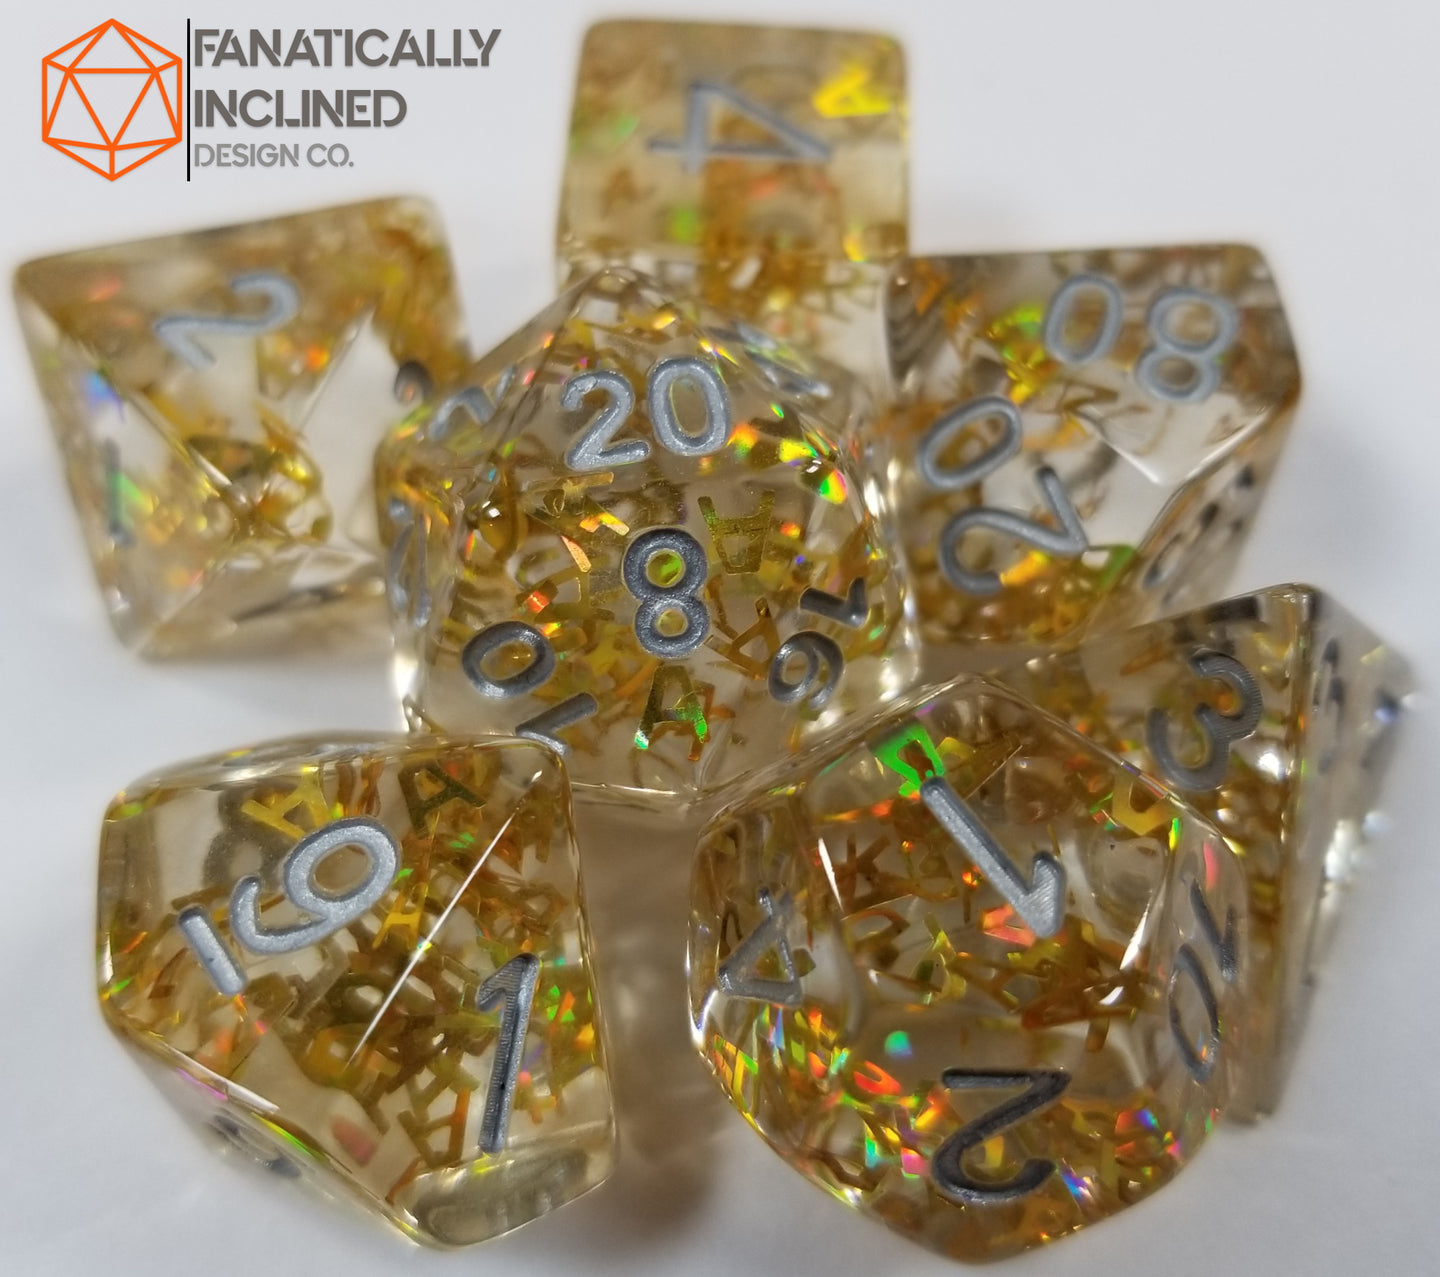 Gold Fragment Filled Resin 7pc Dice Set